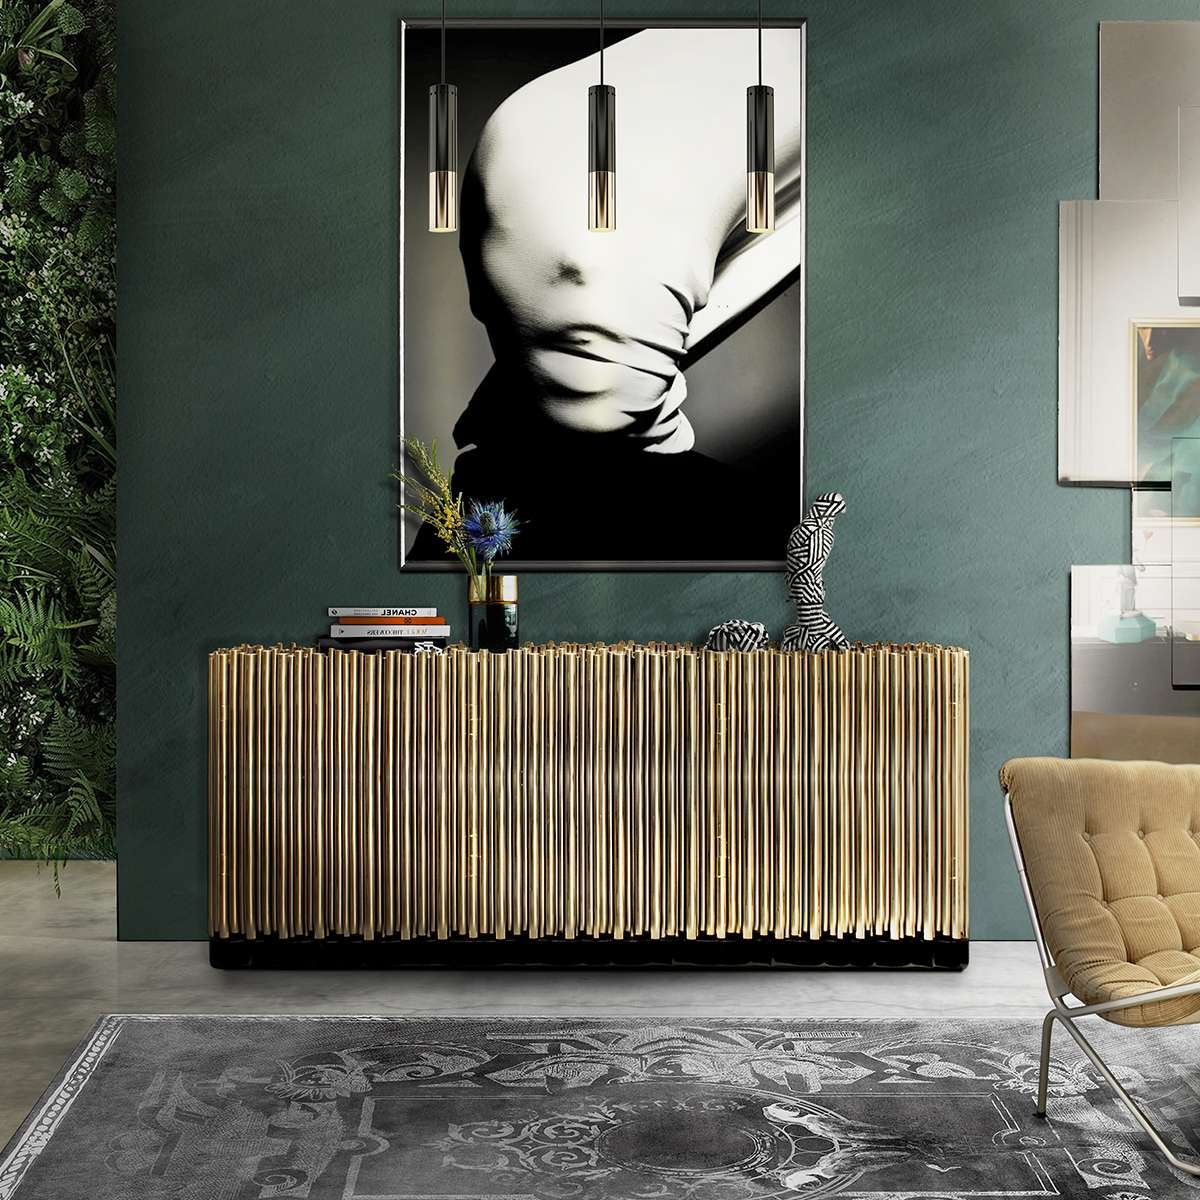 Elegant Dining Room Sideboard Decorating Ideas With Elegant Sideboards (View 2 of 20)